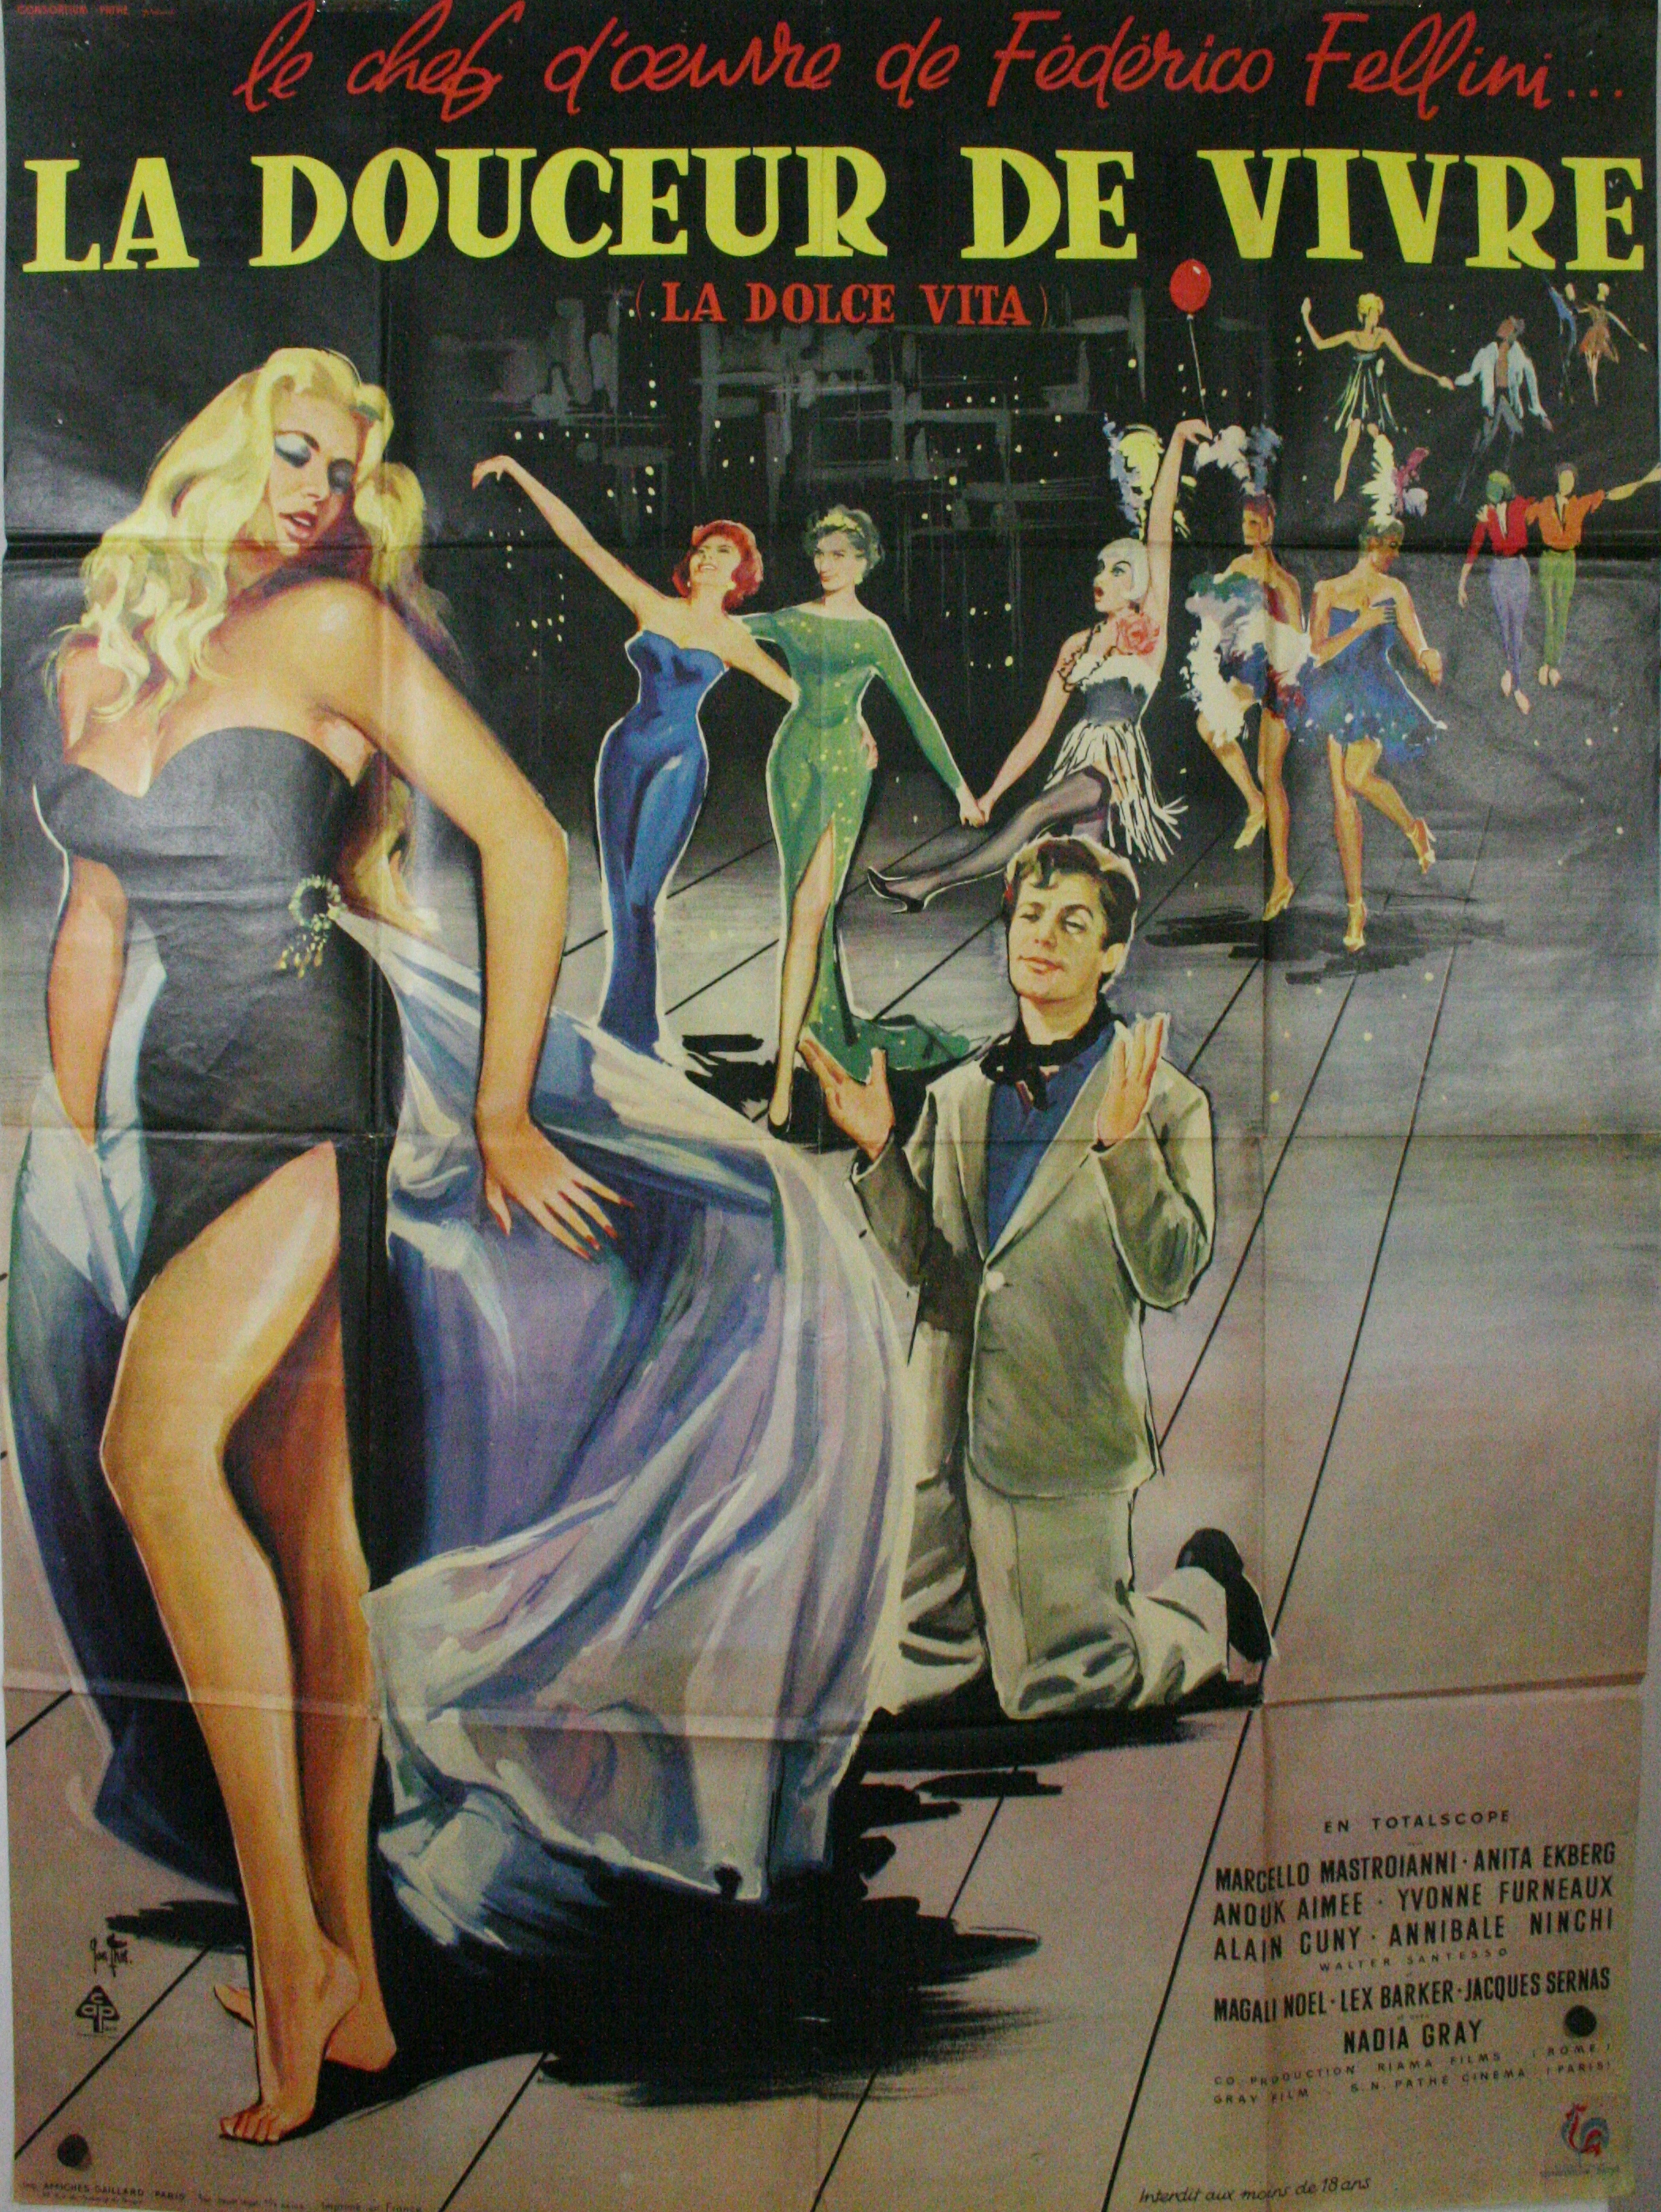 Grannies In Girdles besides 14712178 as well More 20old pictures of west virginia st together with La Dolce Vita La Douceur De Vivre Federico Fellinis French One Panel 1p Movie Theater Poster also 20512749. on oscar meyer natural